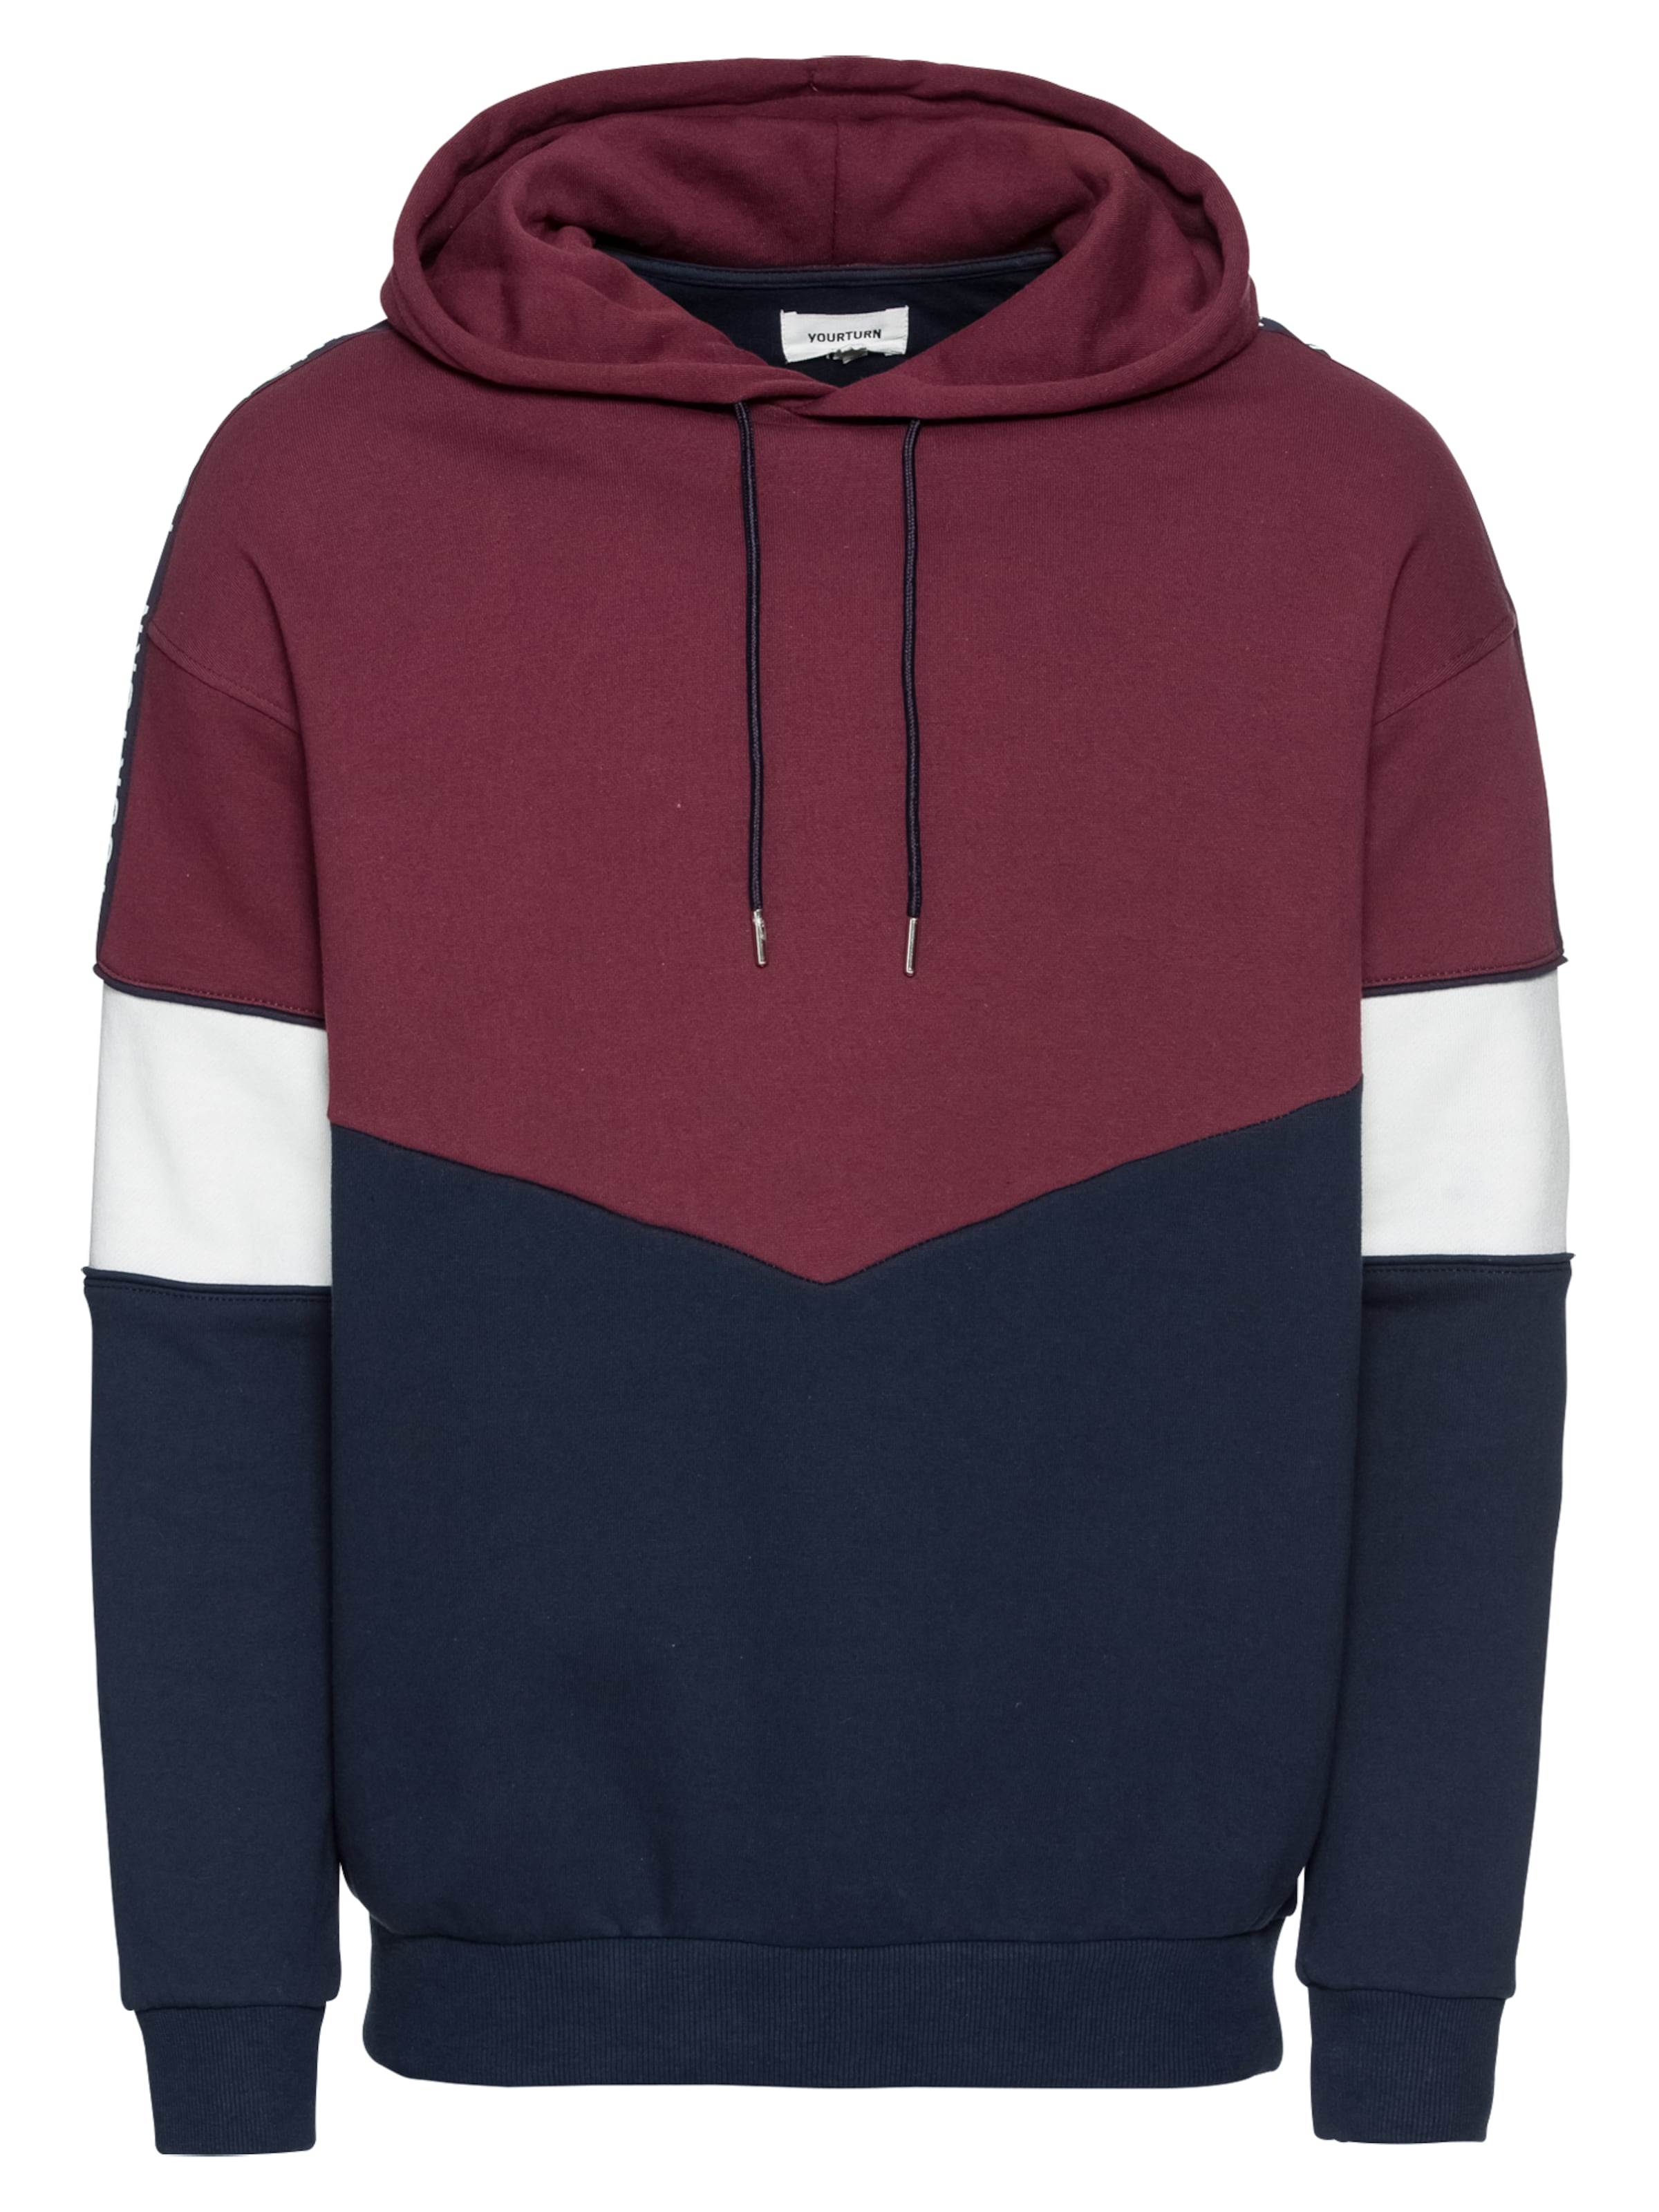 Sweatshirt In Wit Yourturn DonkerblauwRood 54jLq3AR